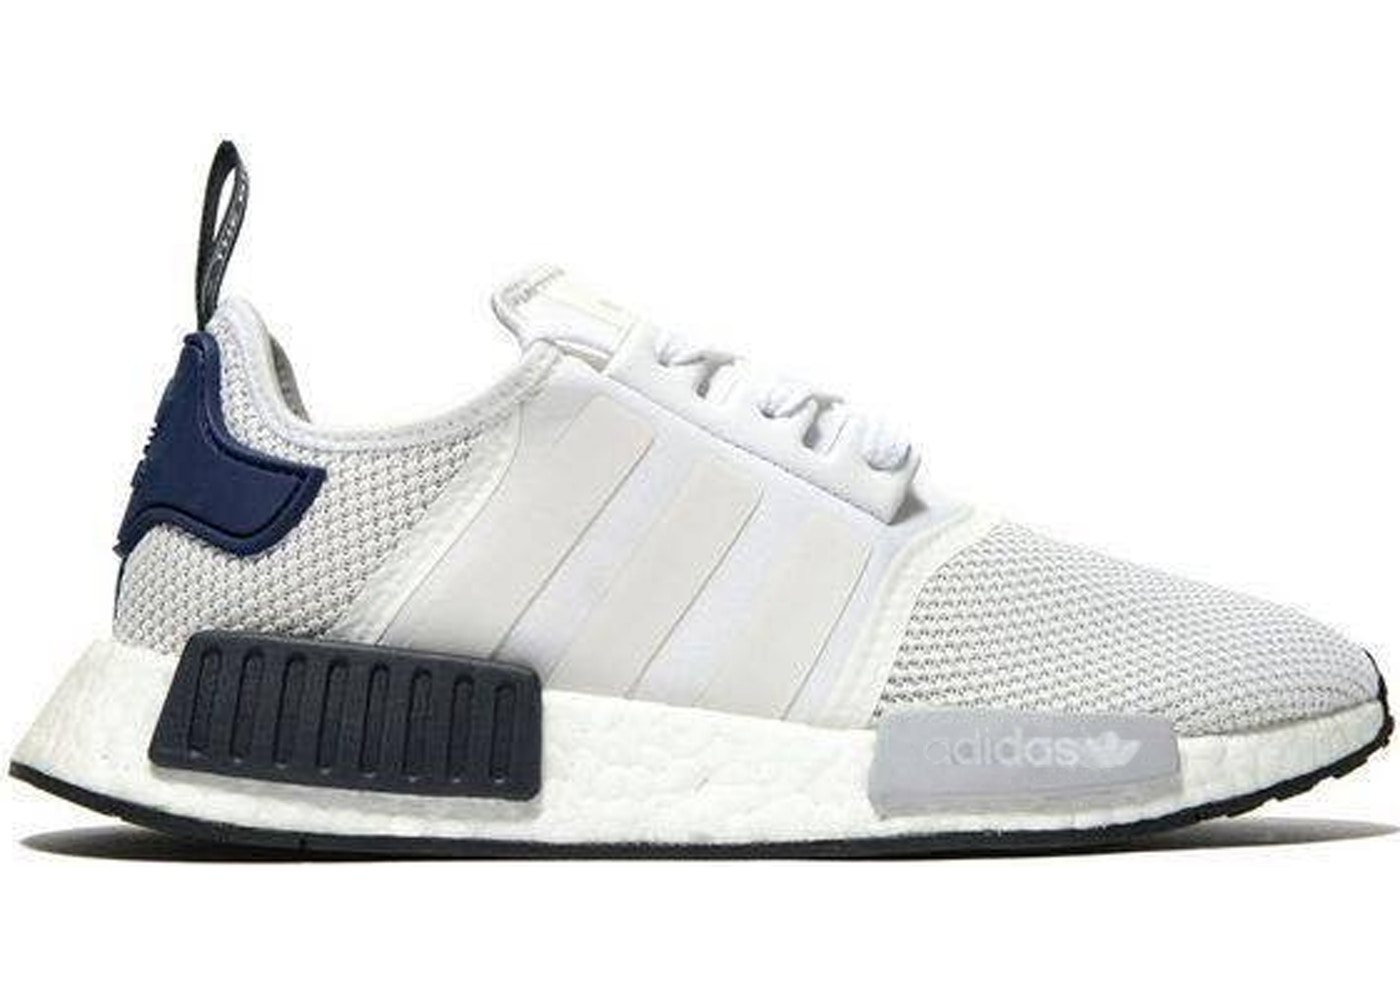 premium selection 6203d a9b9d adidas NMD R1 White Grey Black